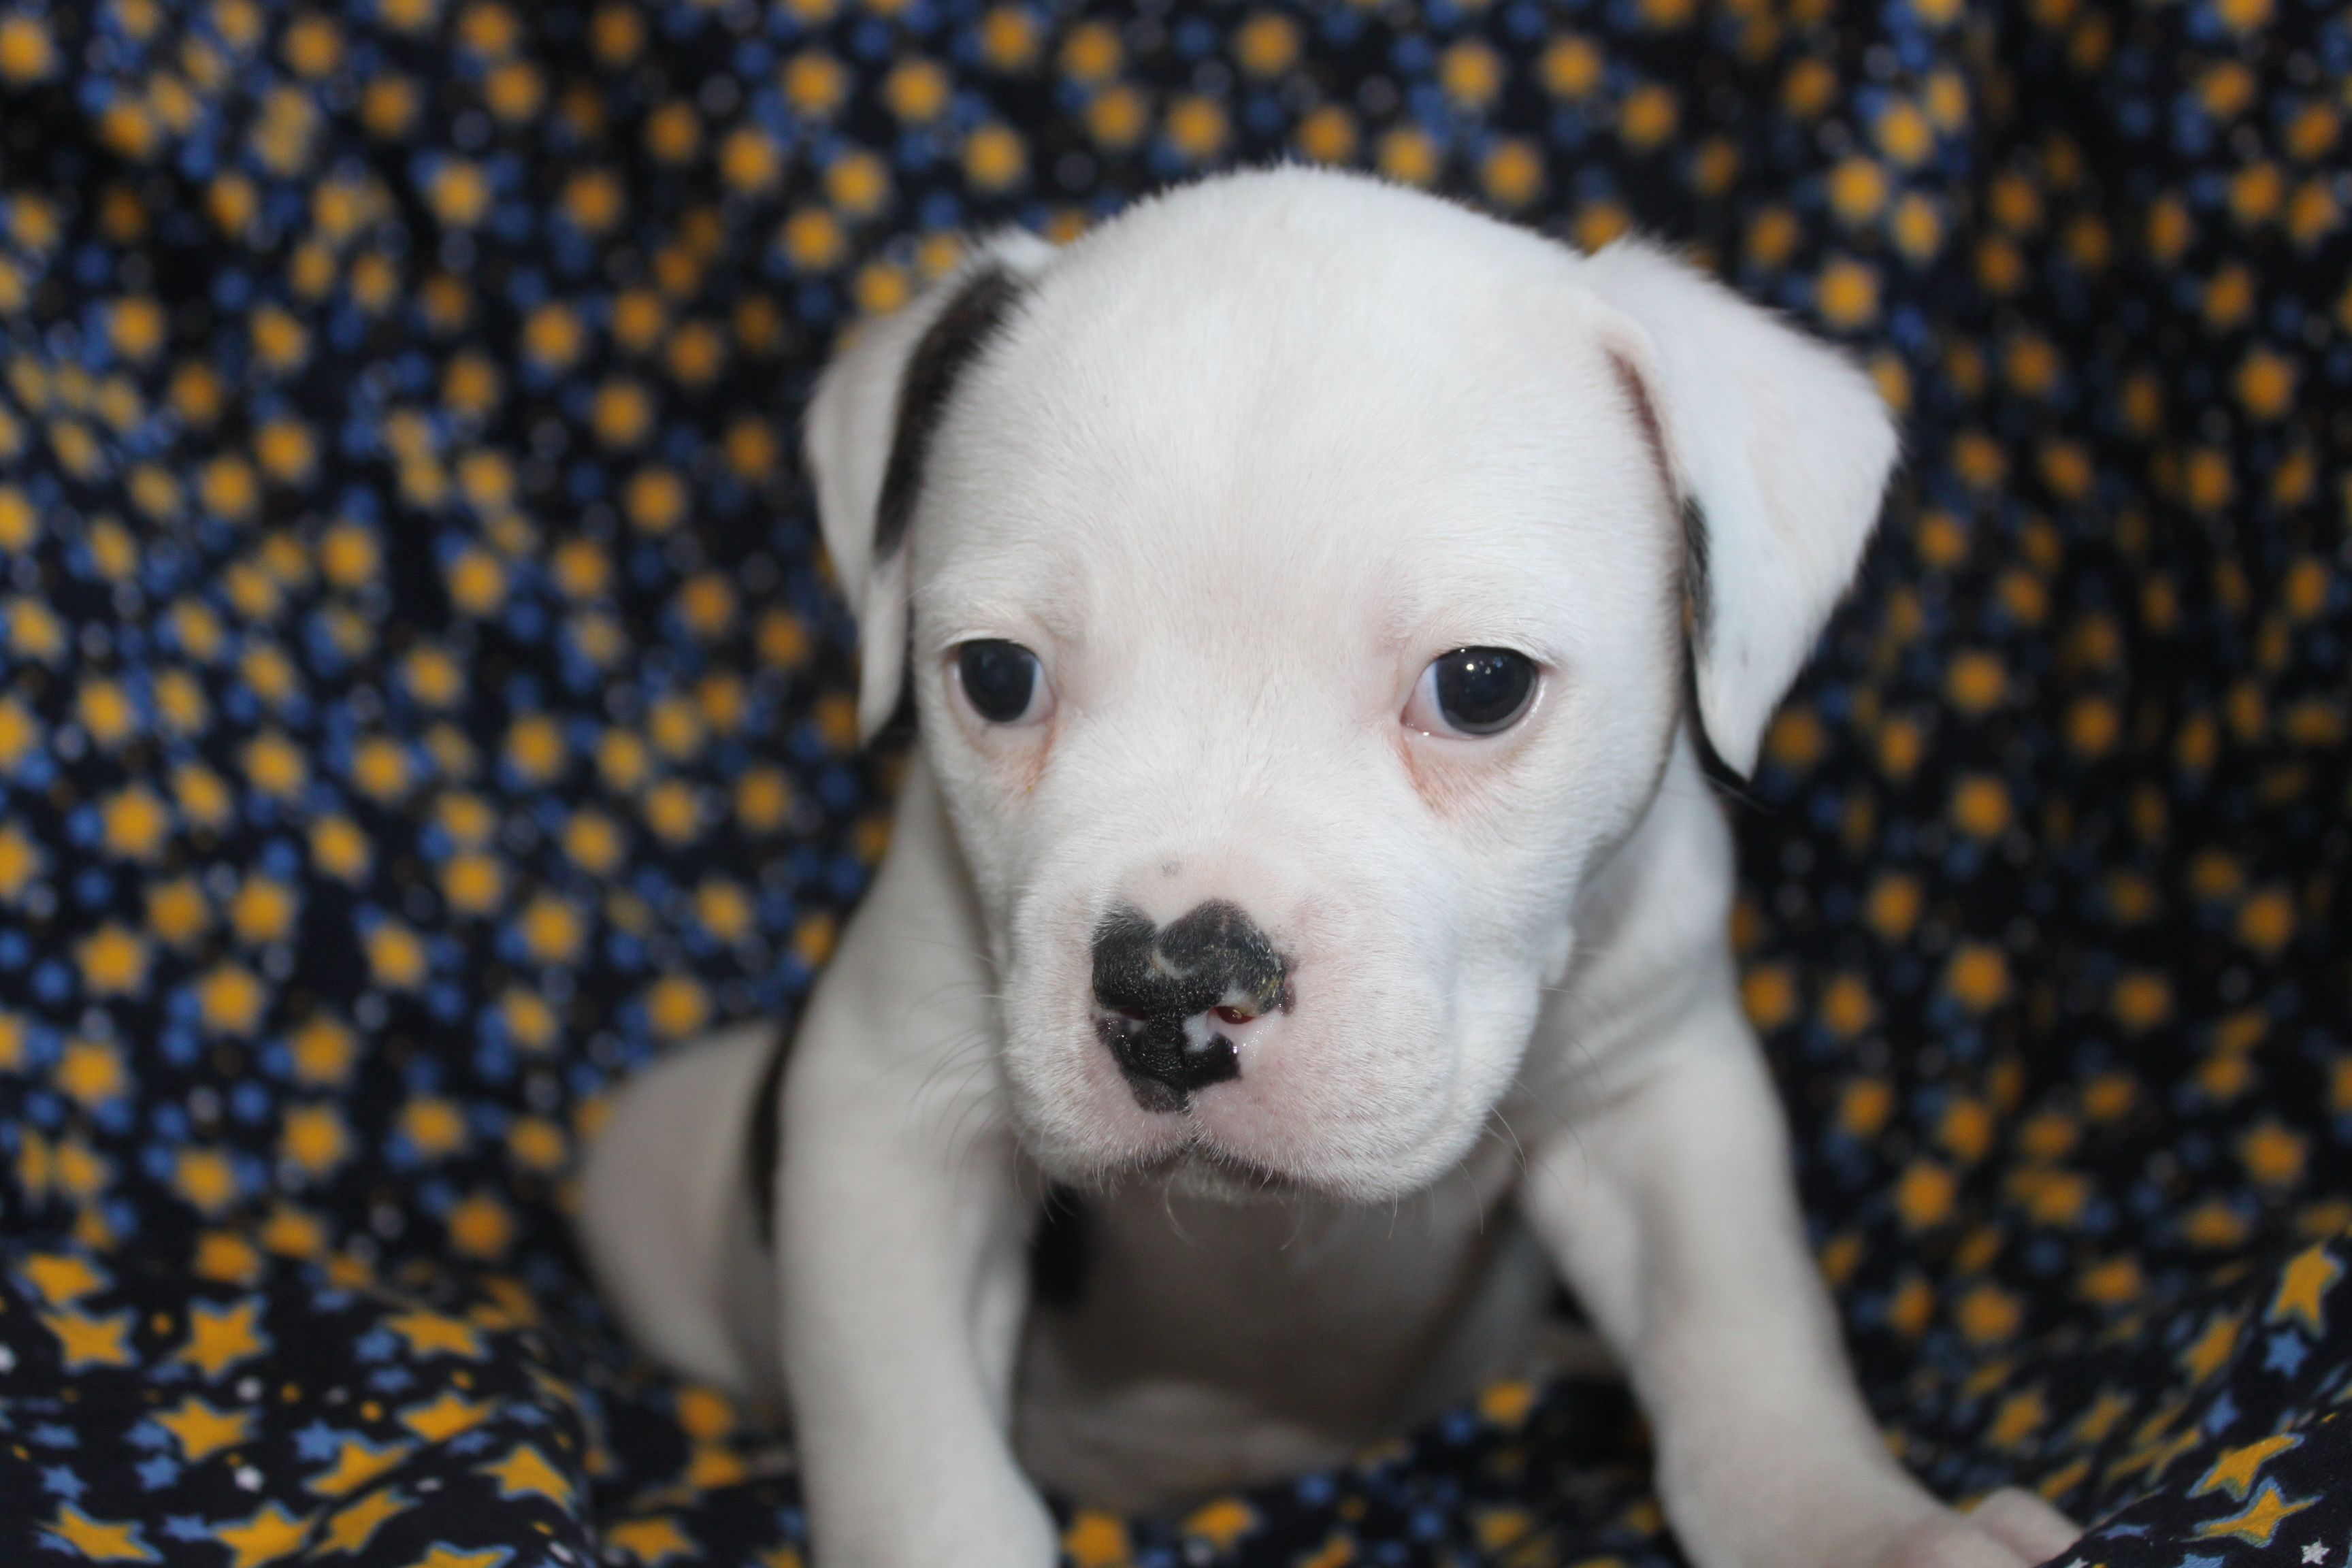 American Bulldog Puppies For Sale In Gap Pa. http//www